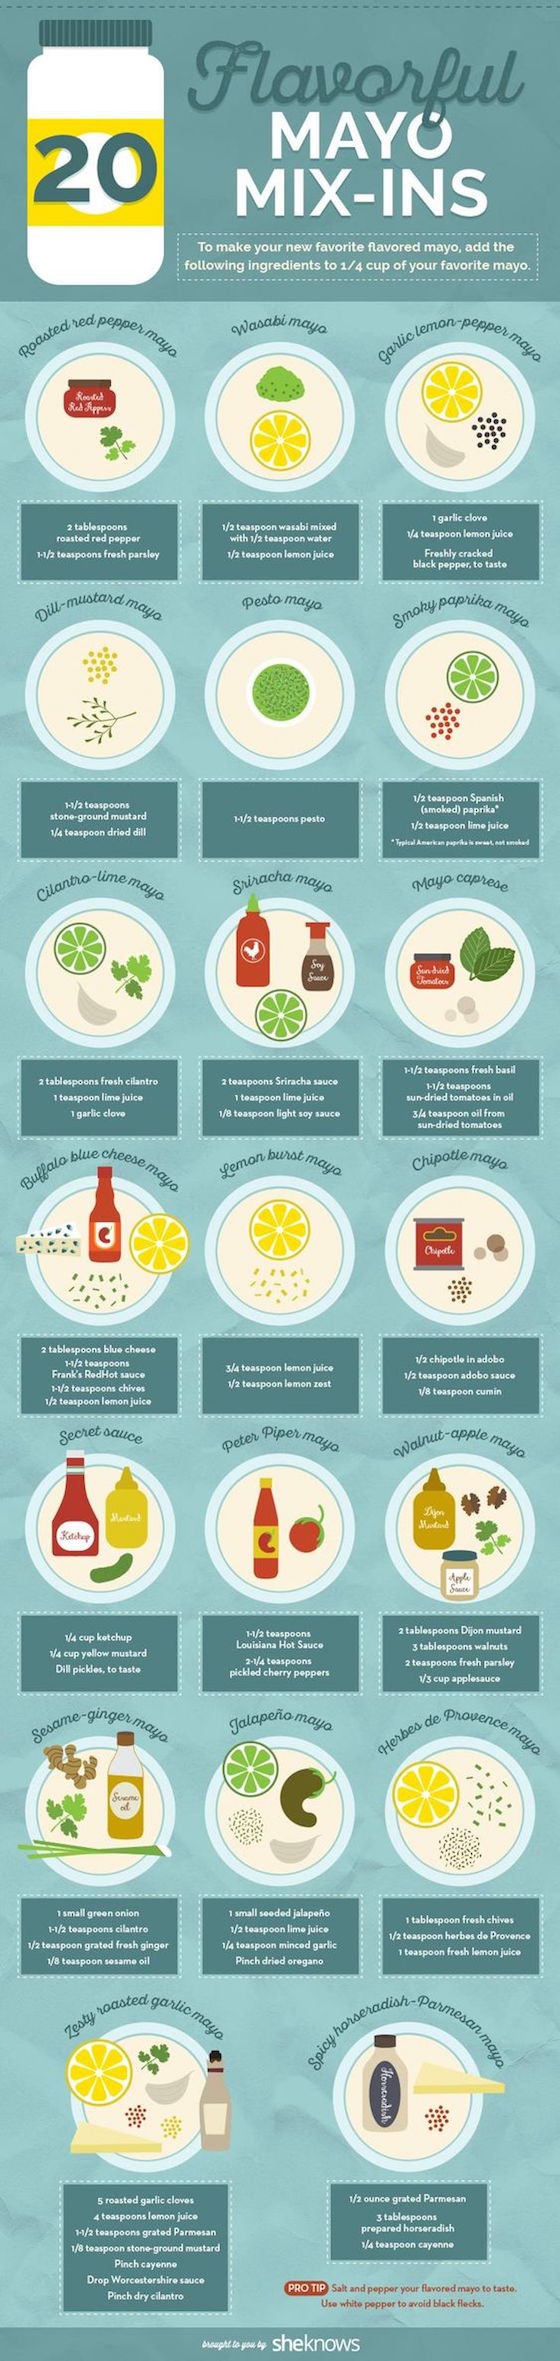 20 ways to spice up your mayo!